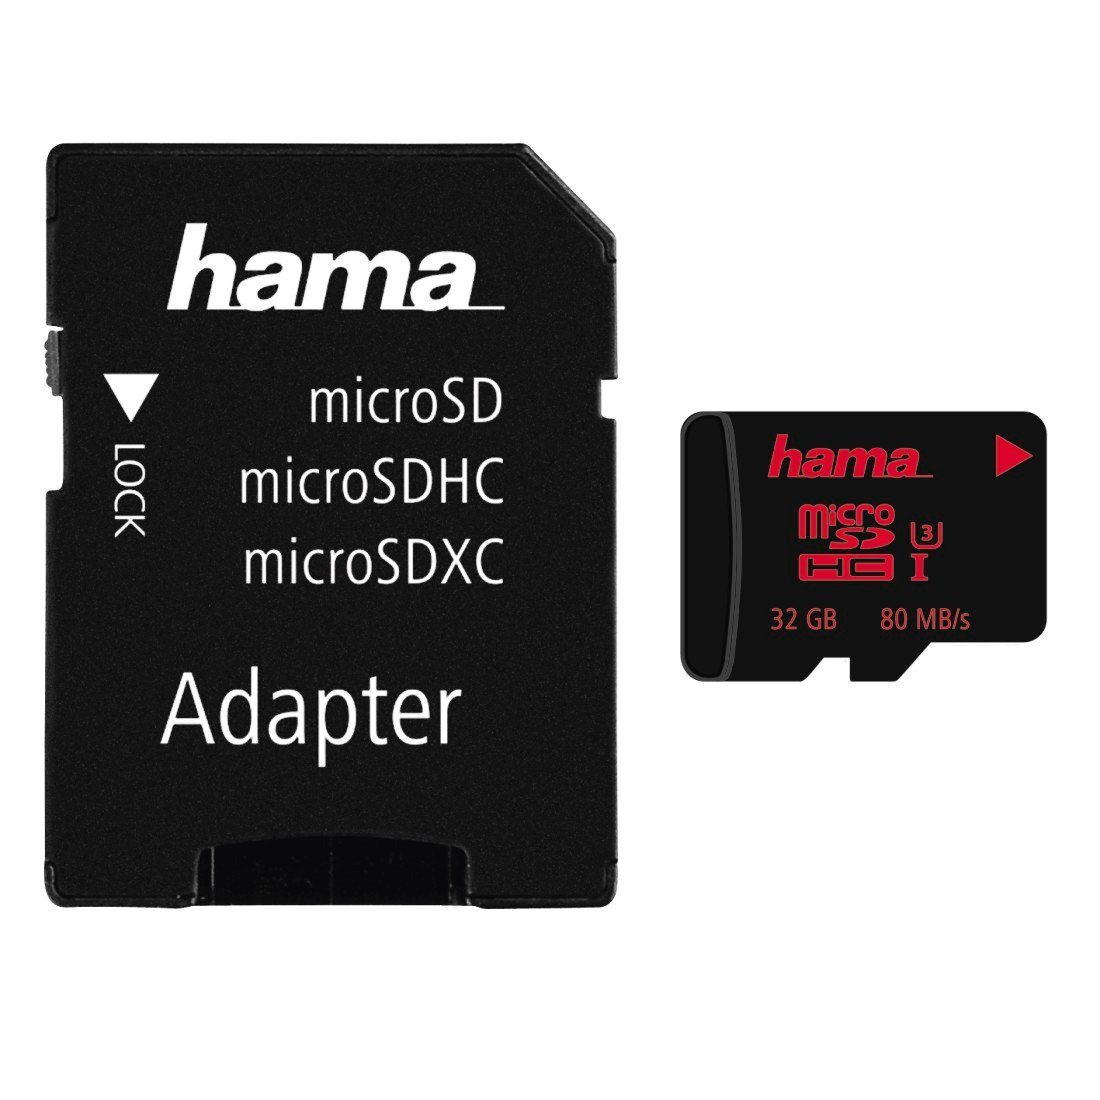 Hama microSDHC 32GB UHS Speed Class 3 UHS-I 80MB/s + Adapter/Foto